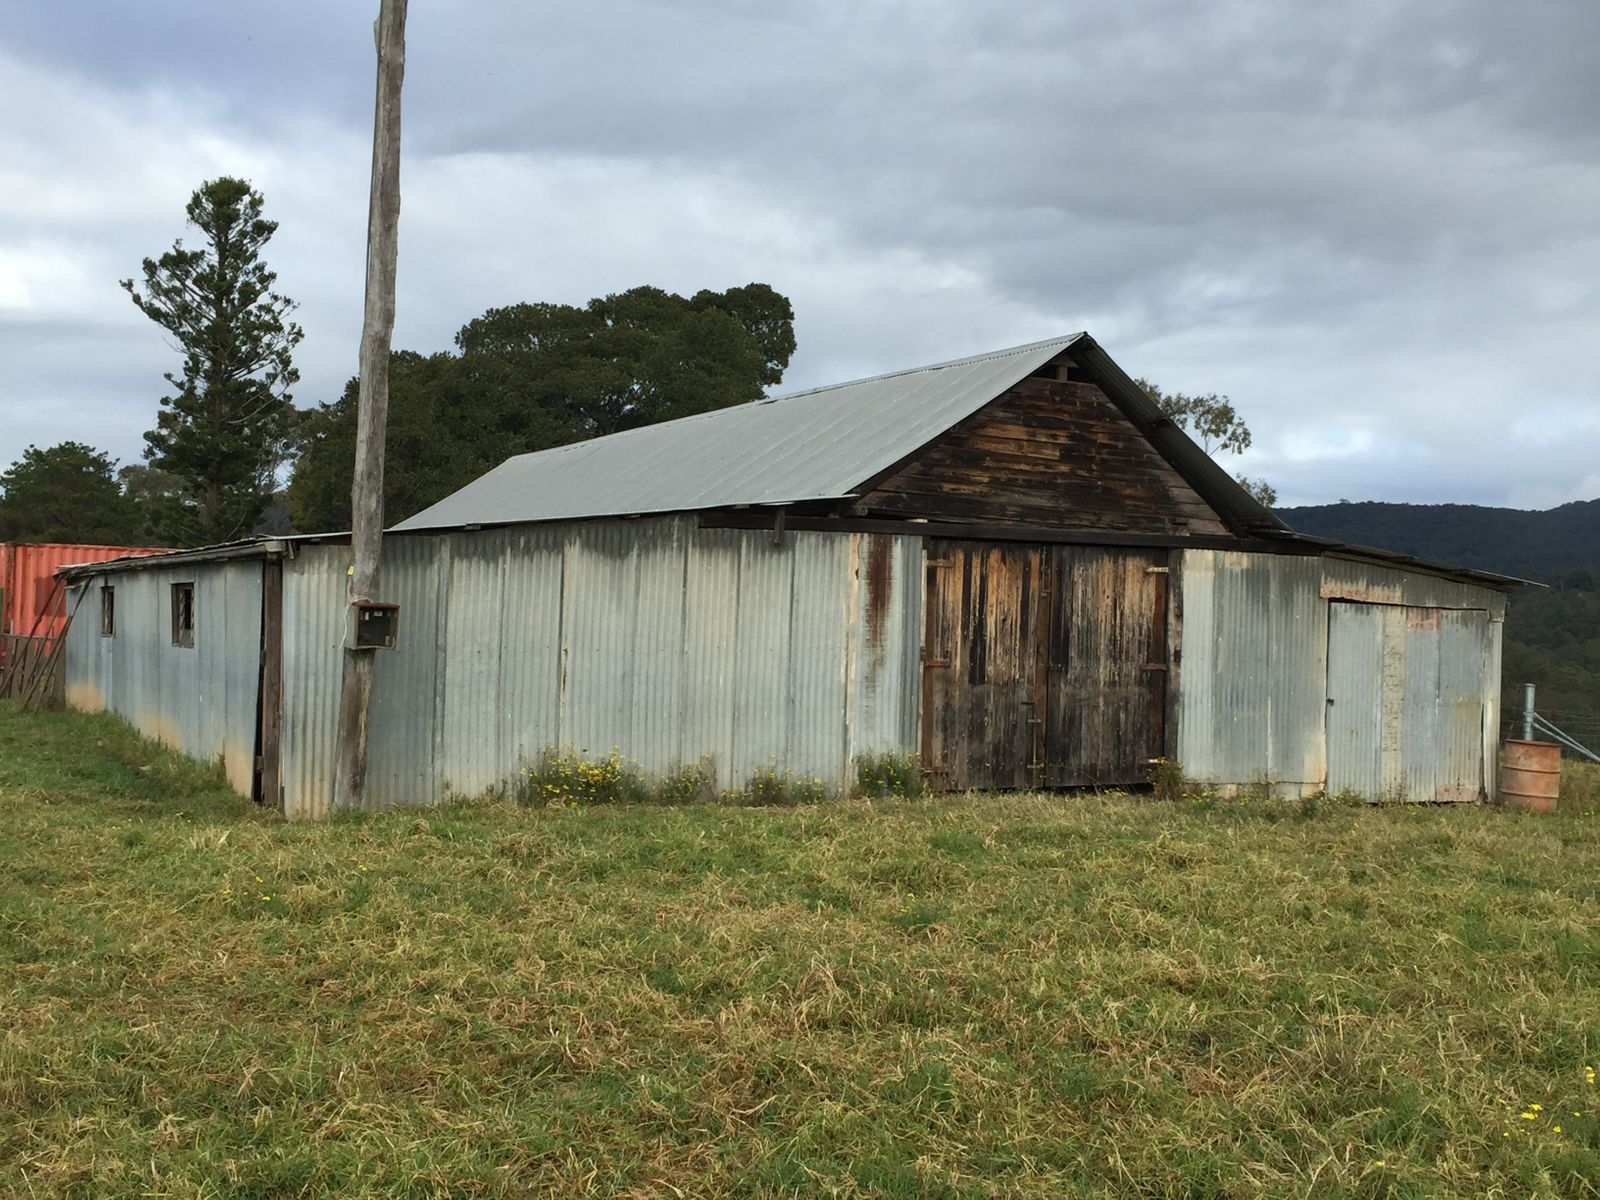 213 Grose Wold Rd, Grose Wold, NSW 2753